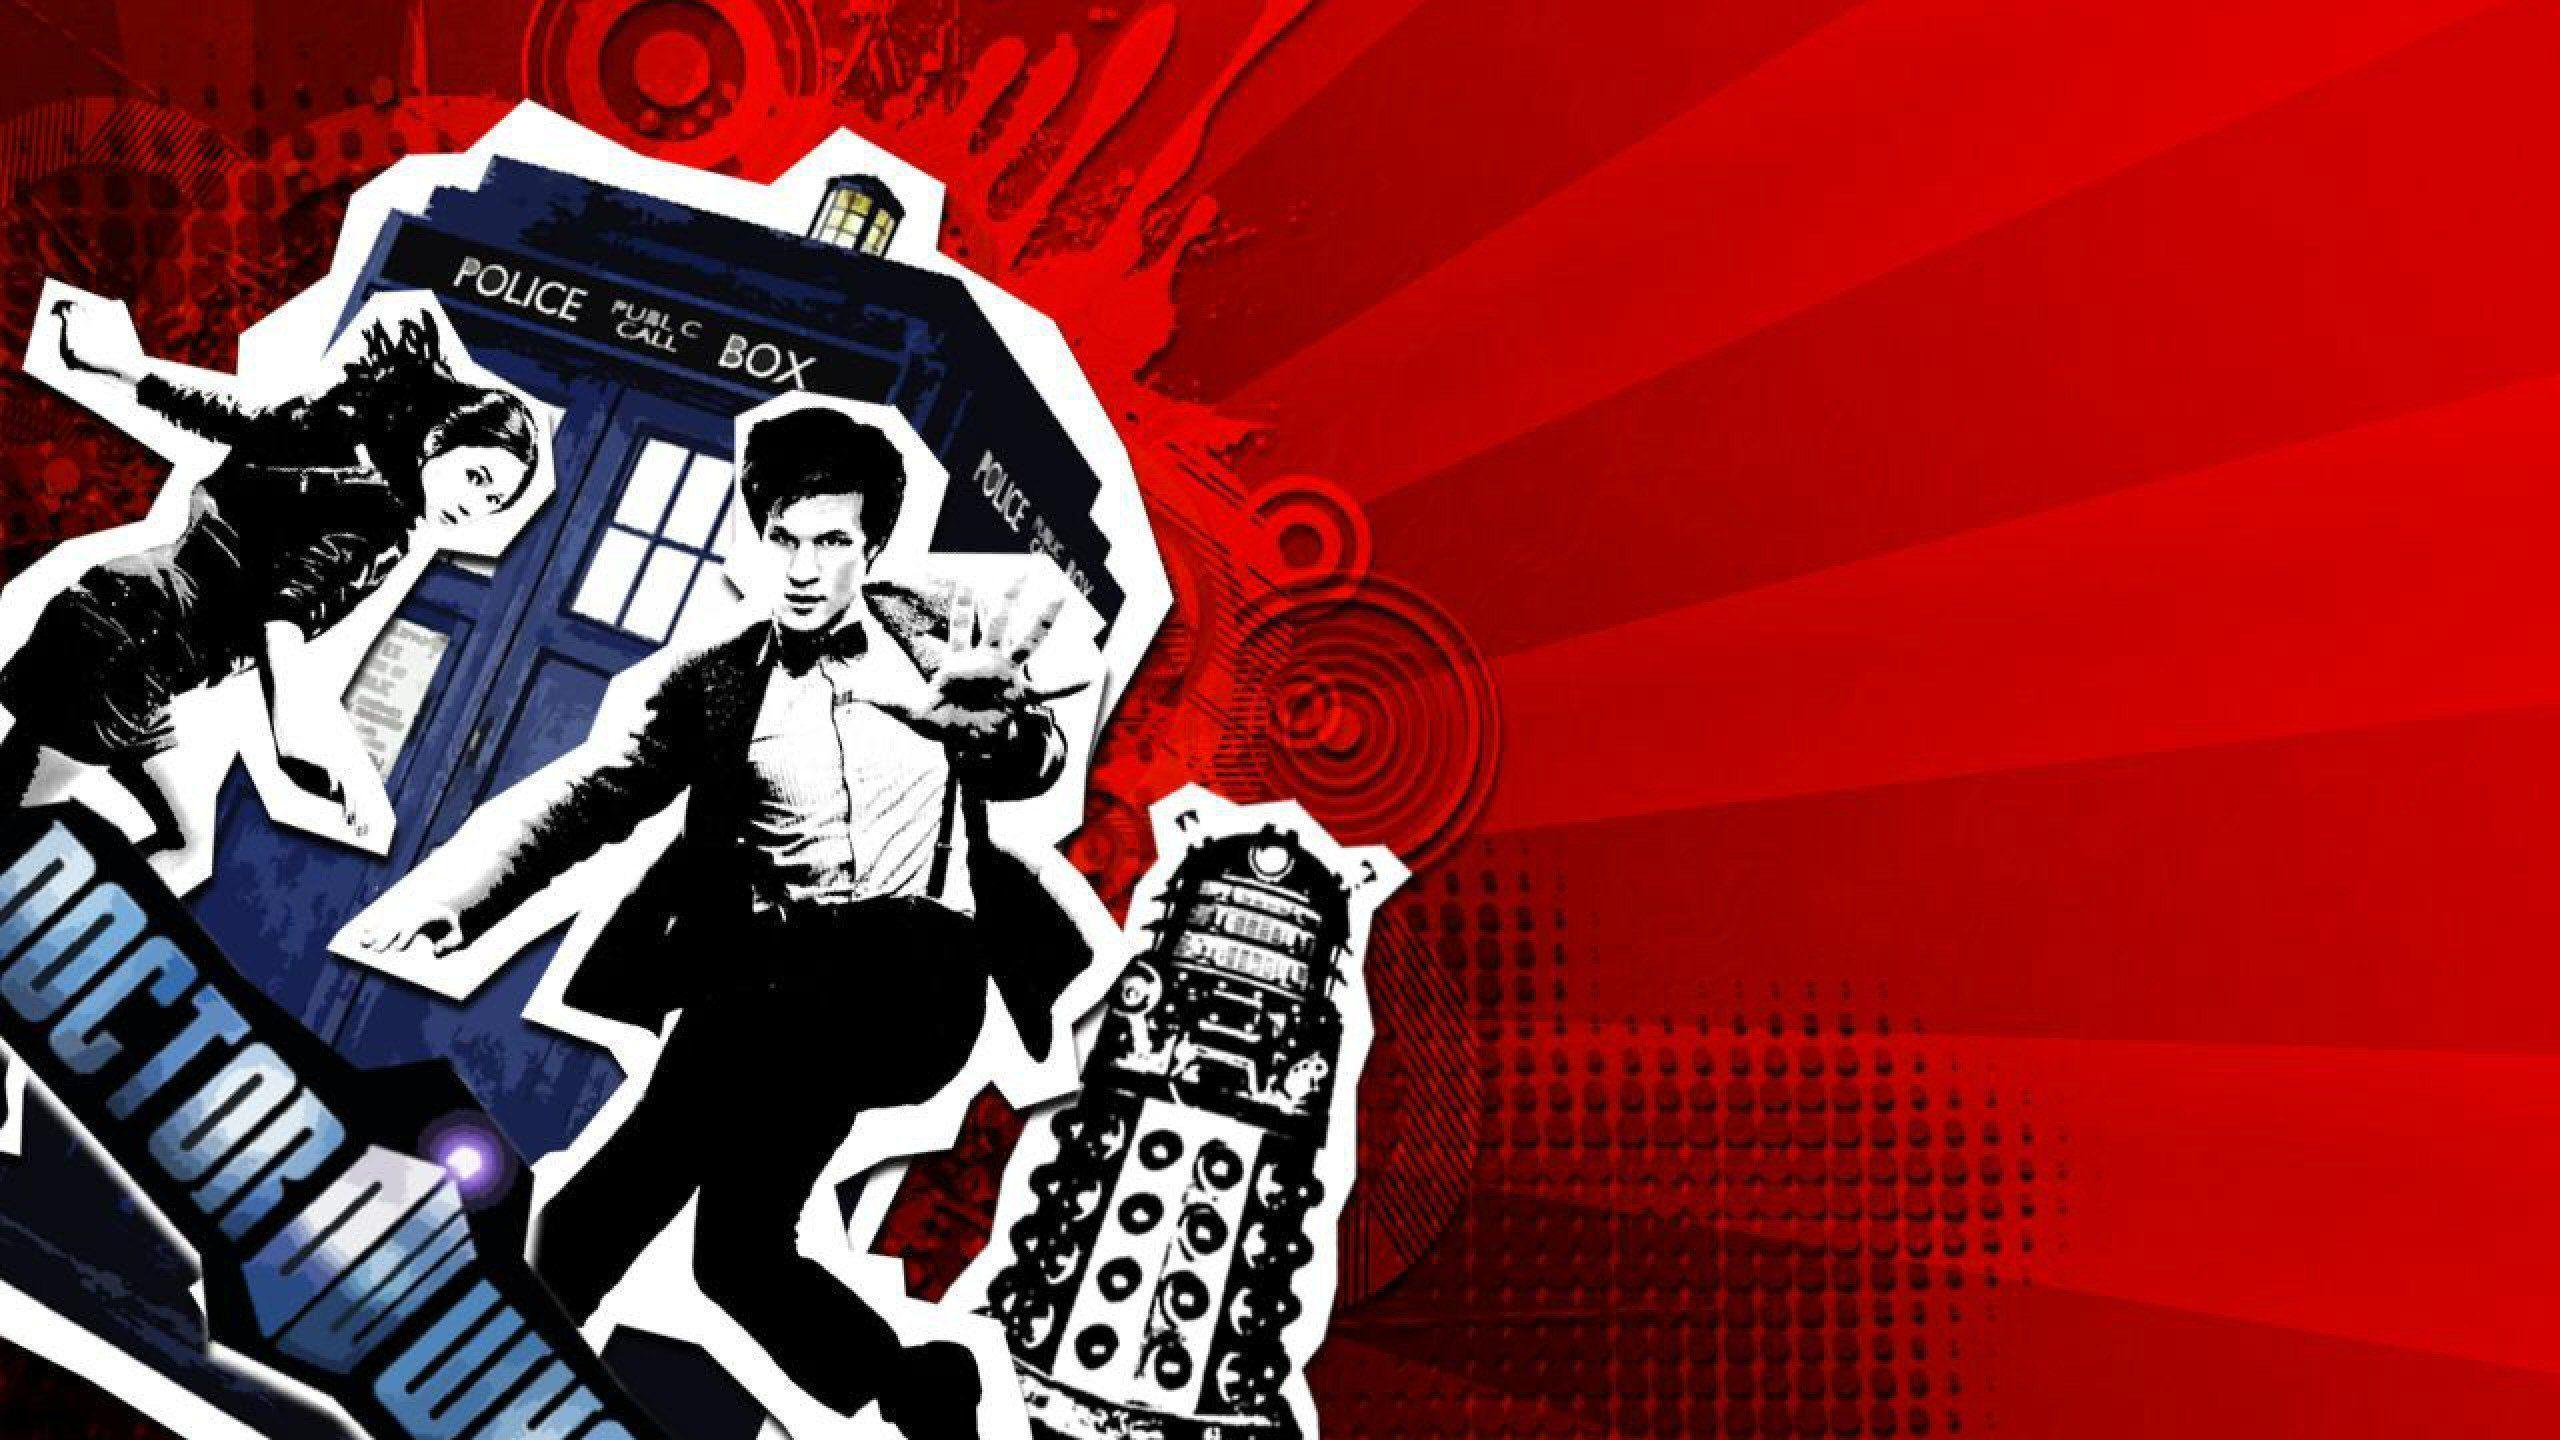 Doctor Who Hd Wallpaper Doctor Who Wallpaper Hd Free Wallpapers